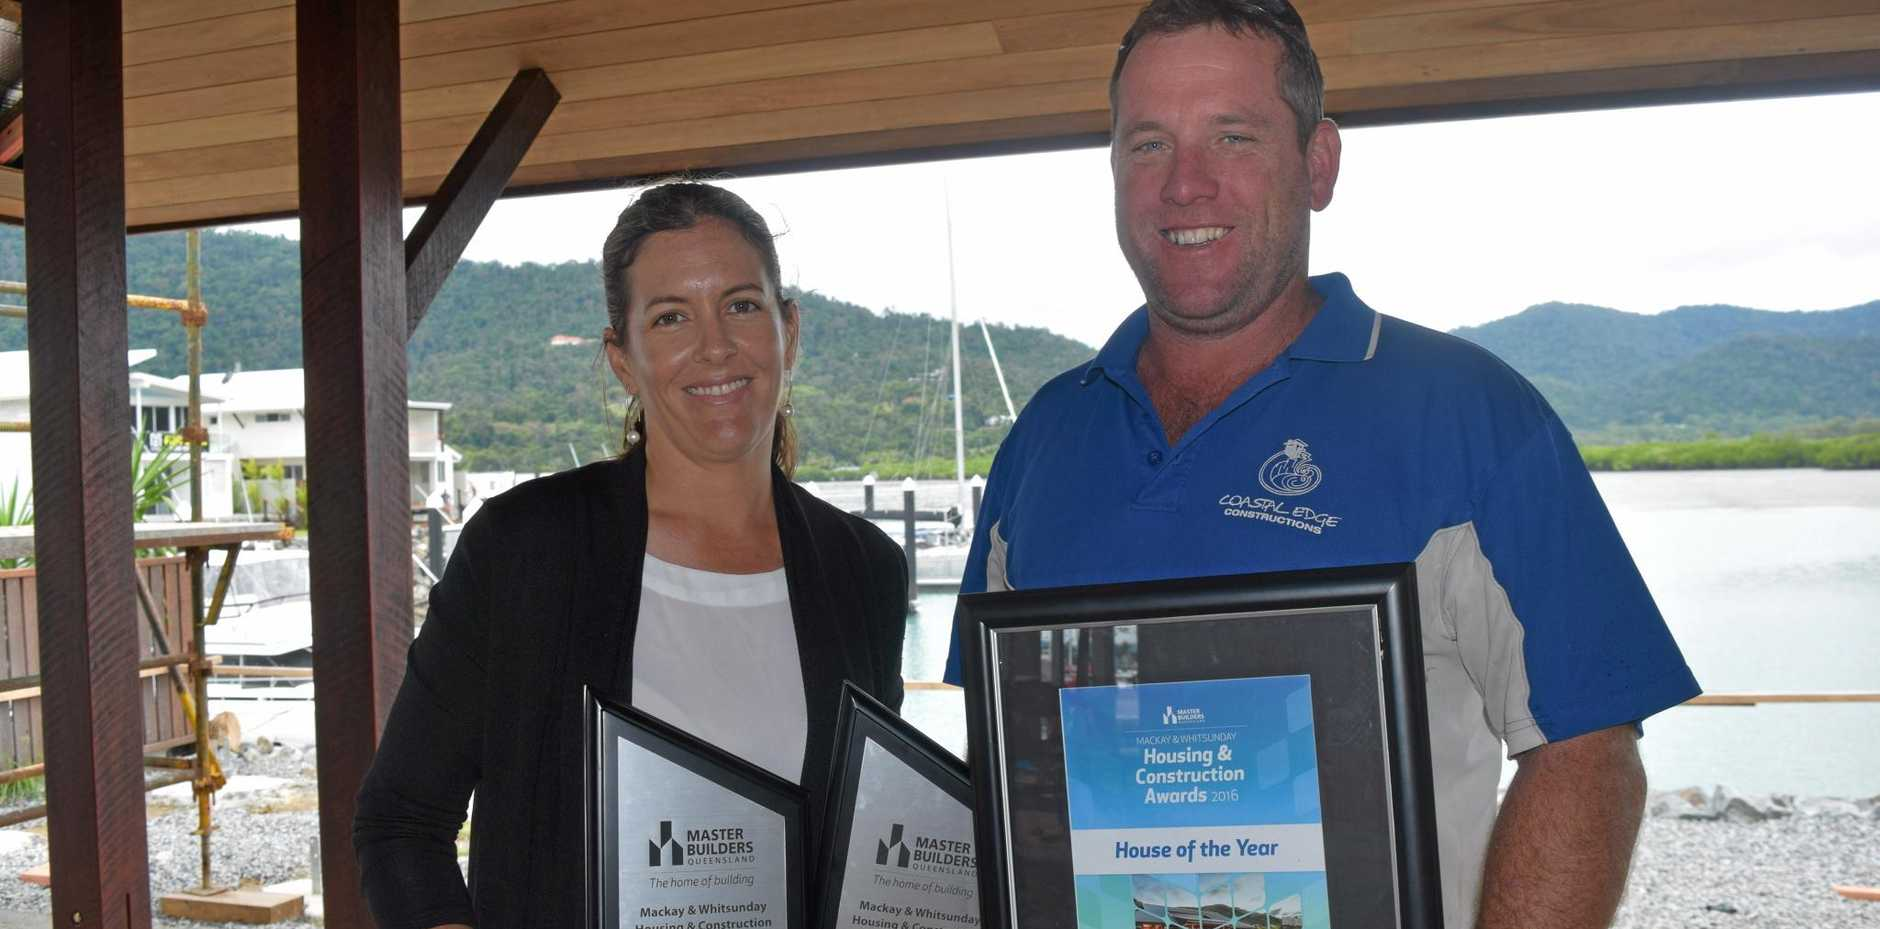 HARD WORK: Jodie and Ben Ferdinand with their awards at their home at The Cove.